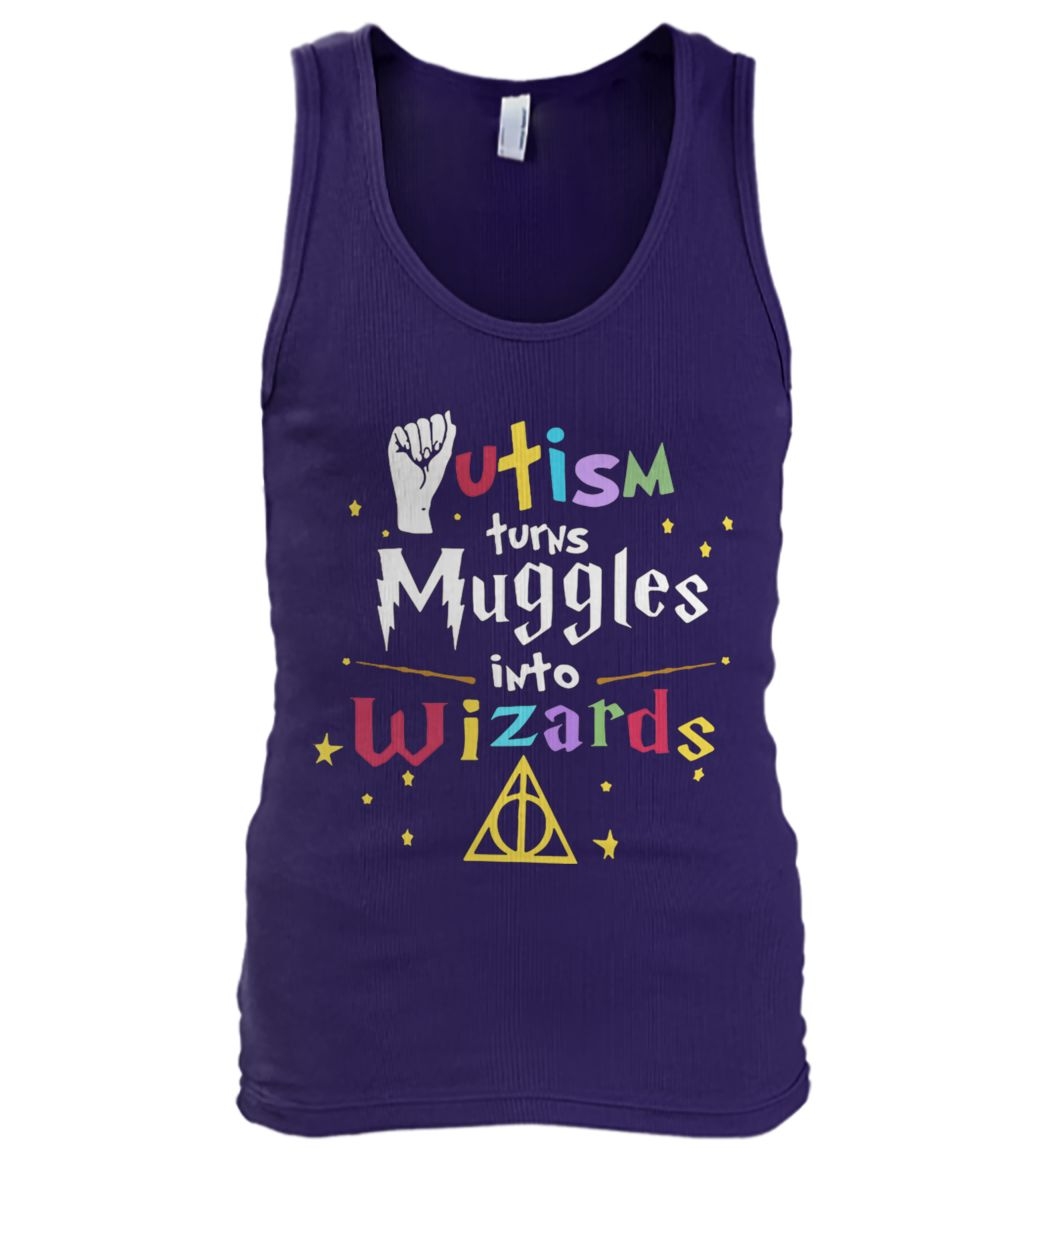 Harry potter autism turns muggles into wizards men's tank top